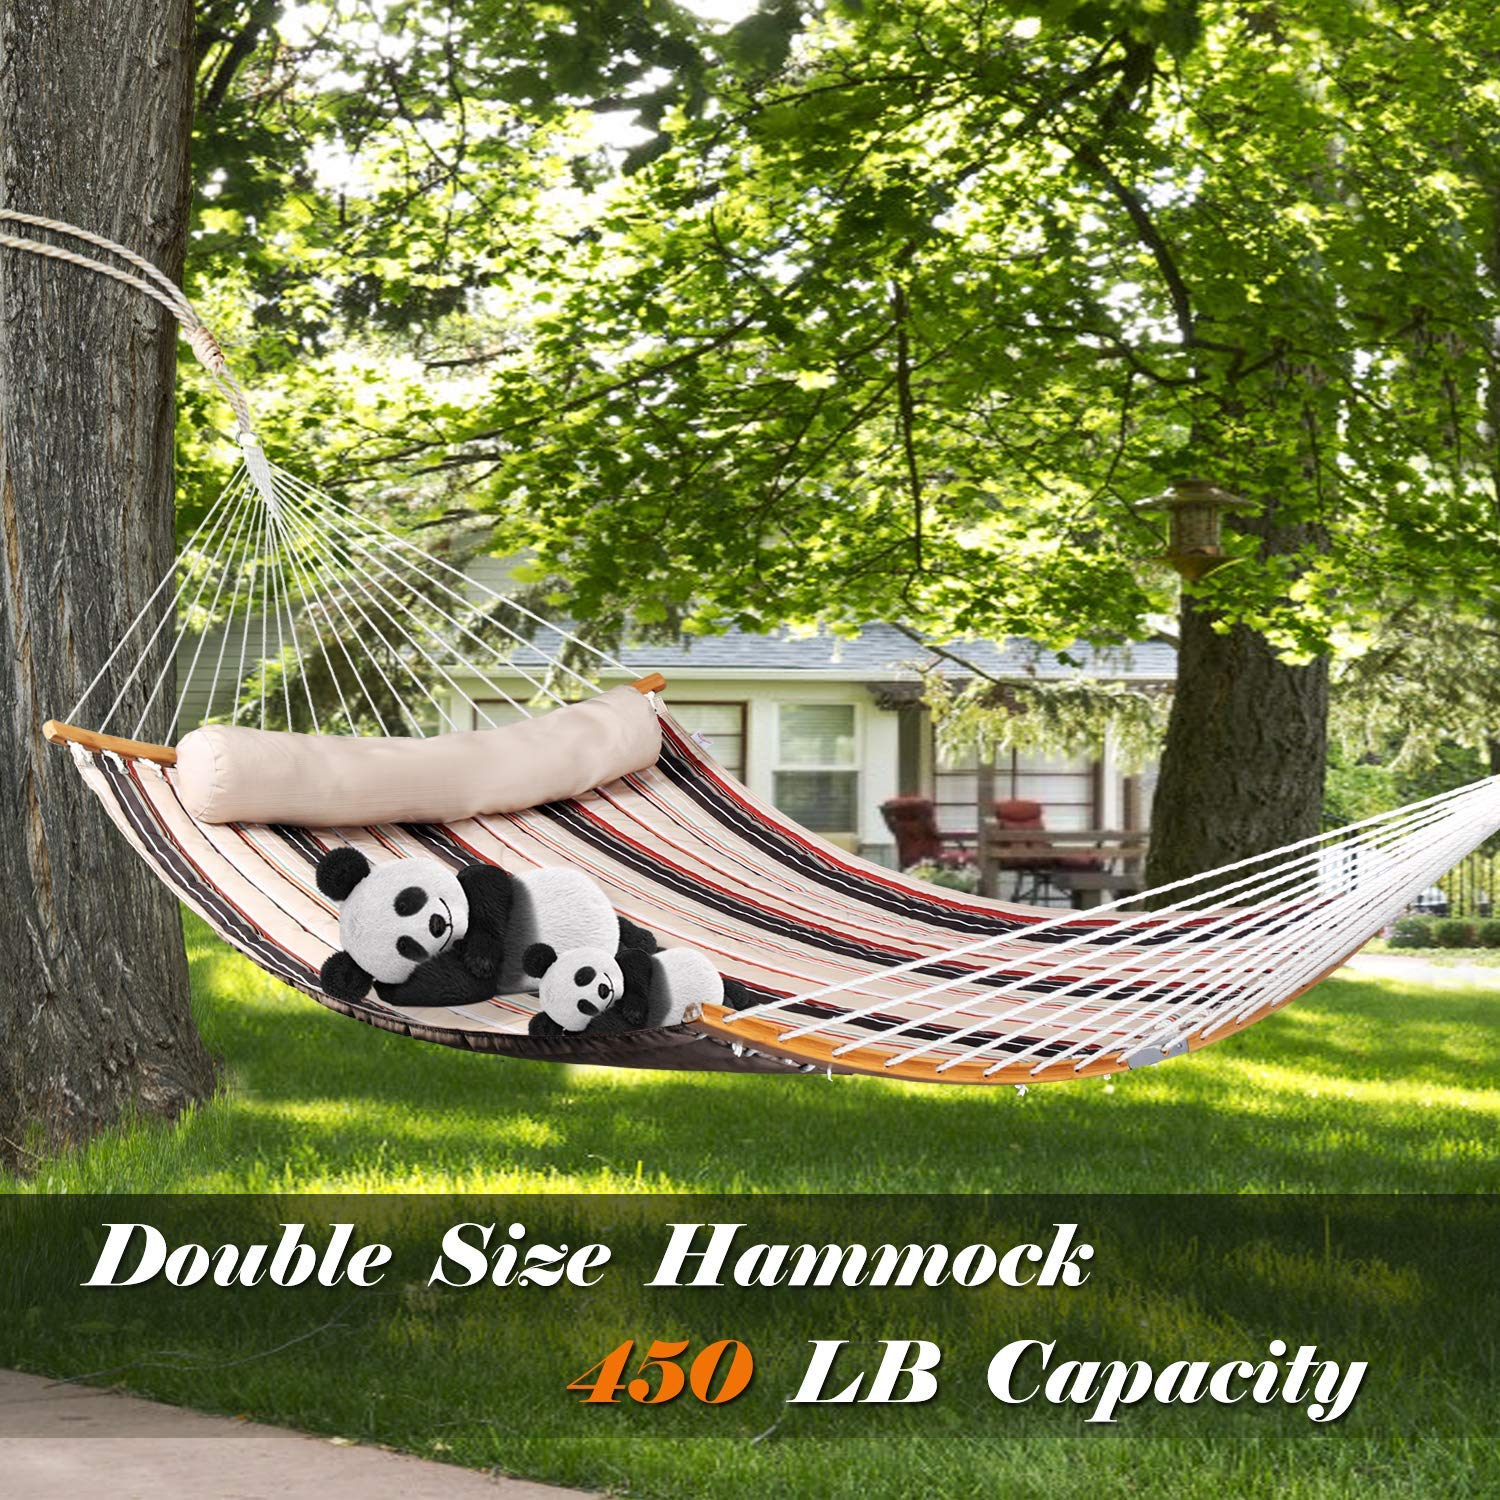 Curved Bar Design Portable Camping Hammock Swing w//Small Carrying Bag Quilted Durable Fabric Bathonly 2019 New Double Hammock w//Foldable Bar /& Detachable Pillow Royal Blue